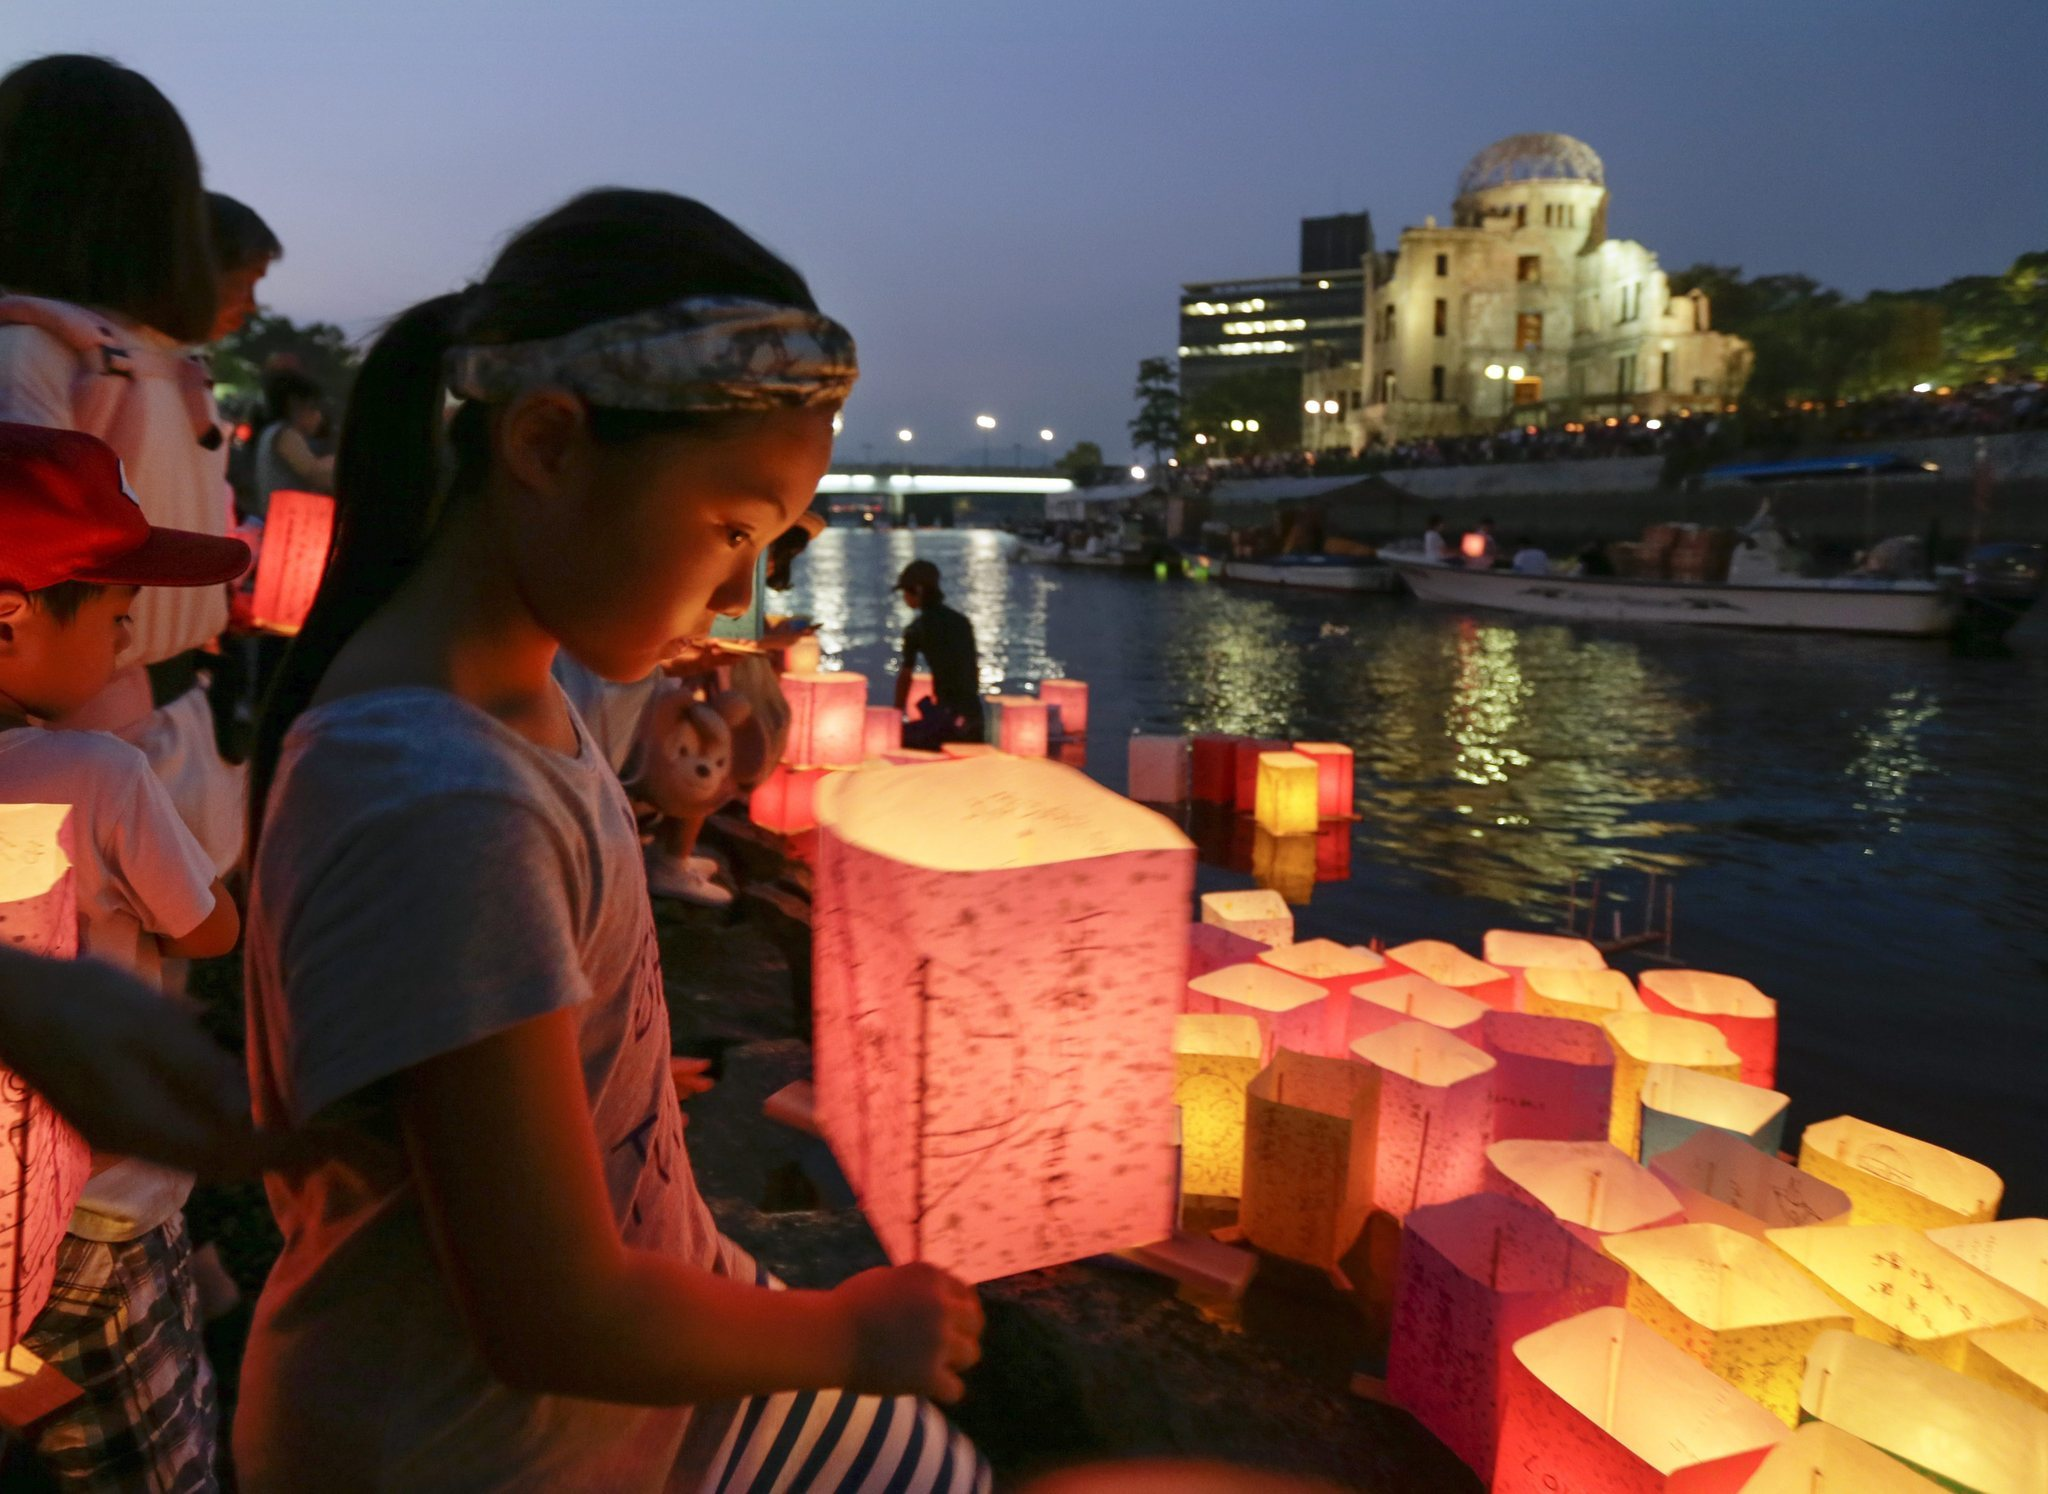 Japan doesn't want the U.S. to apologize for bombing Hiroshima. Here's why